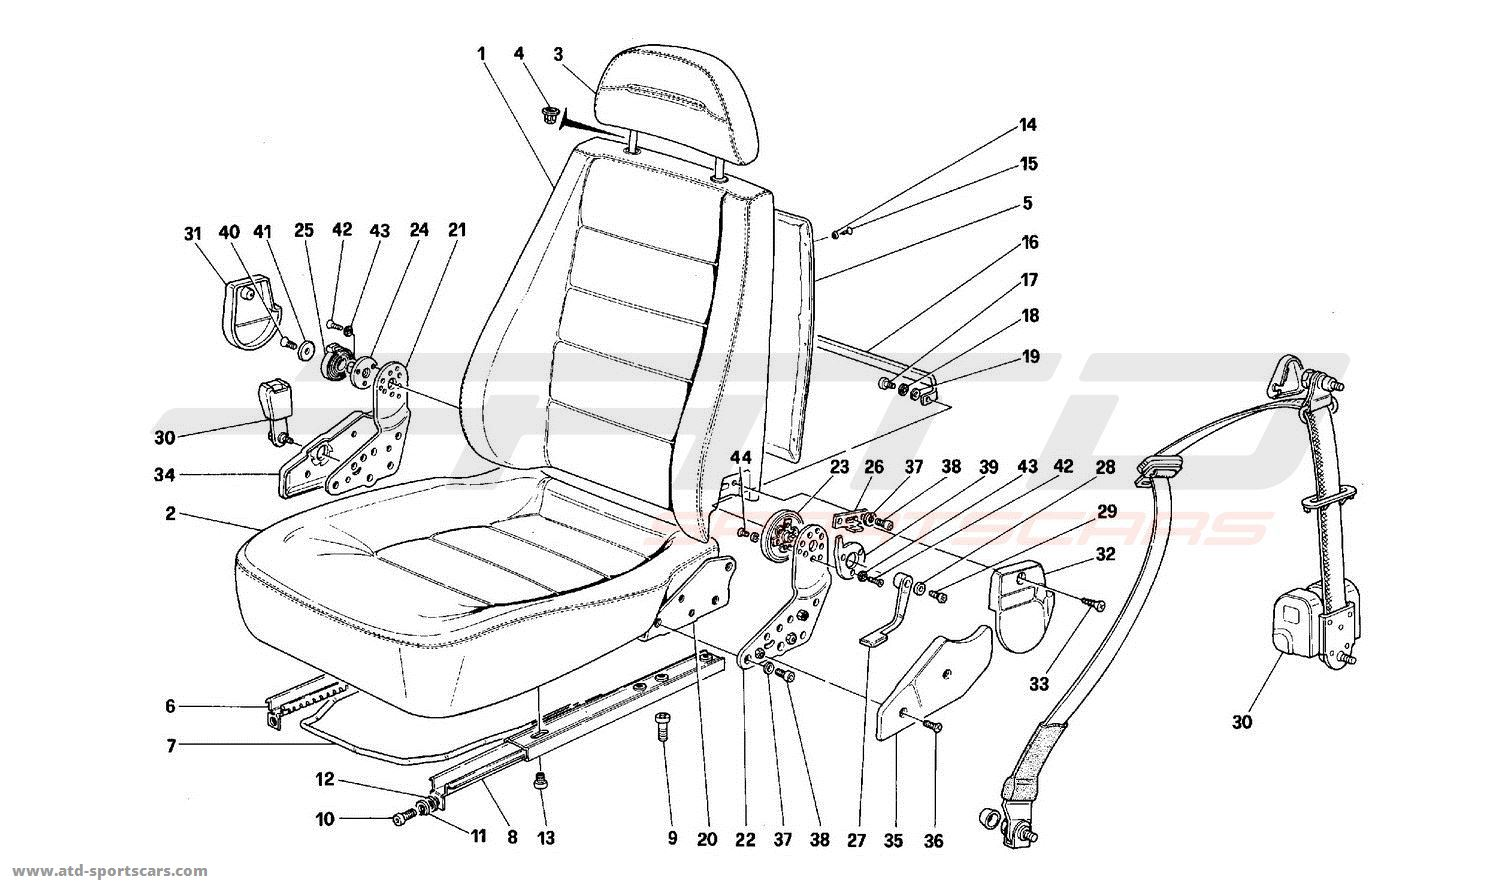 ferrari mondial t front seats parts at atd sportscars atd sportscars. Black Bedroom Furniture Sets. Home Design Ideas